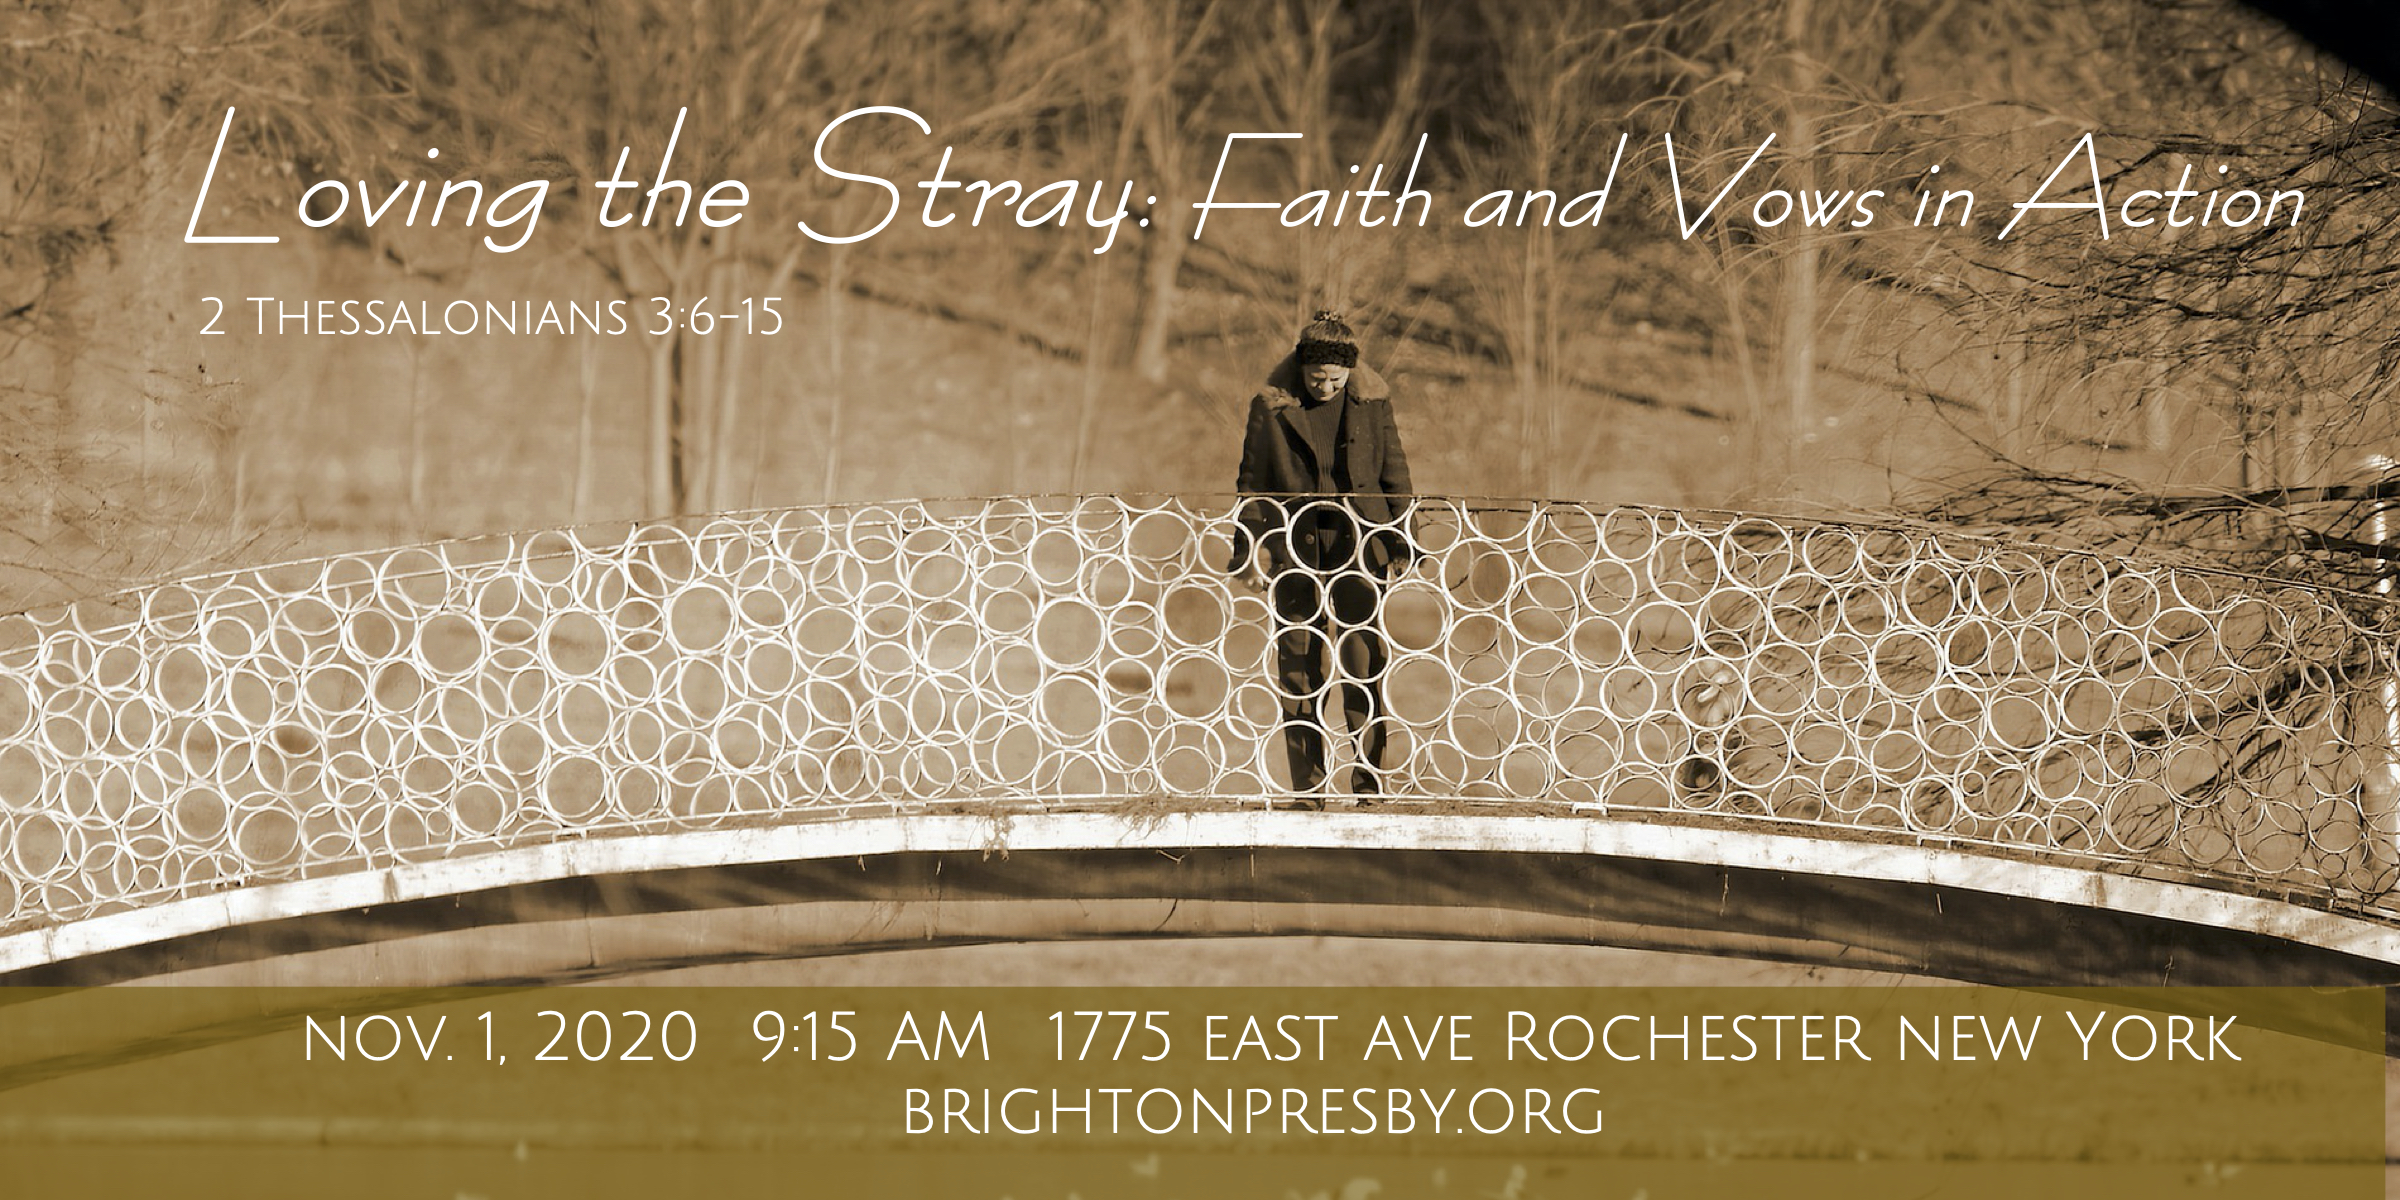 Loving the Stray: Faith and Vows in Action (Part 12 of Thessalonians Series)